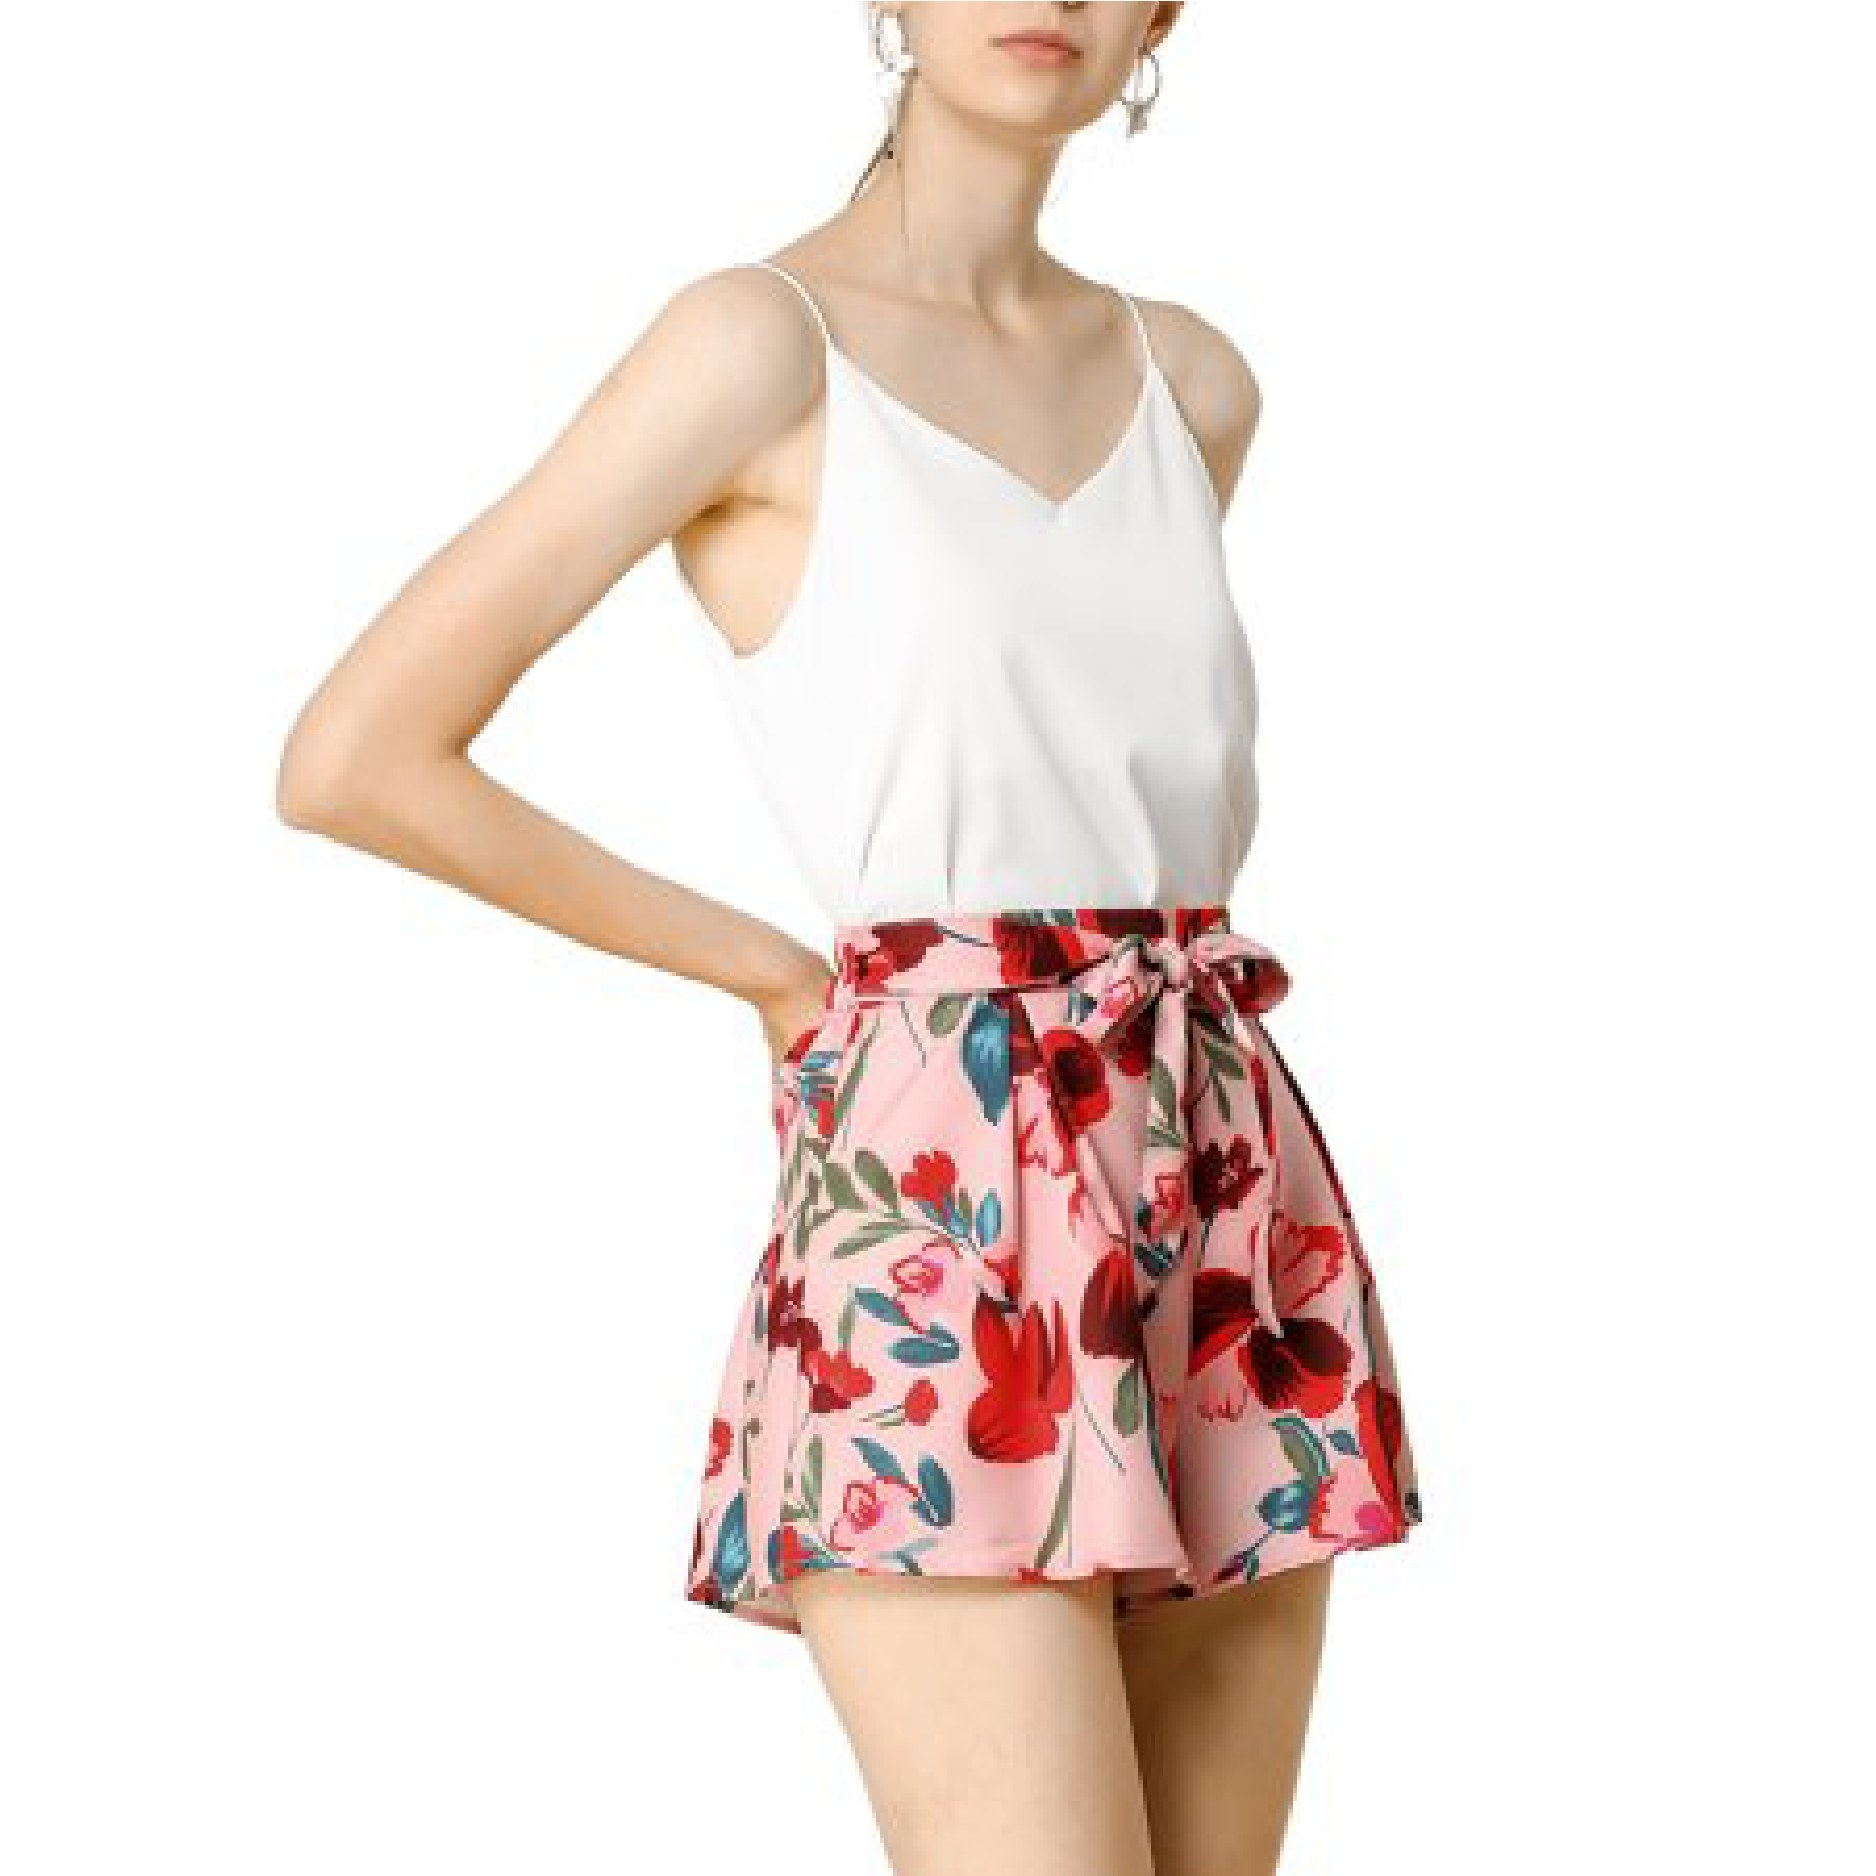 The pink belted floral shorts